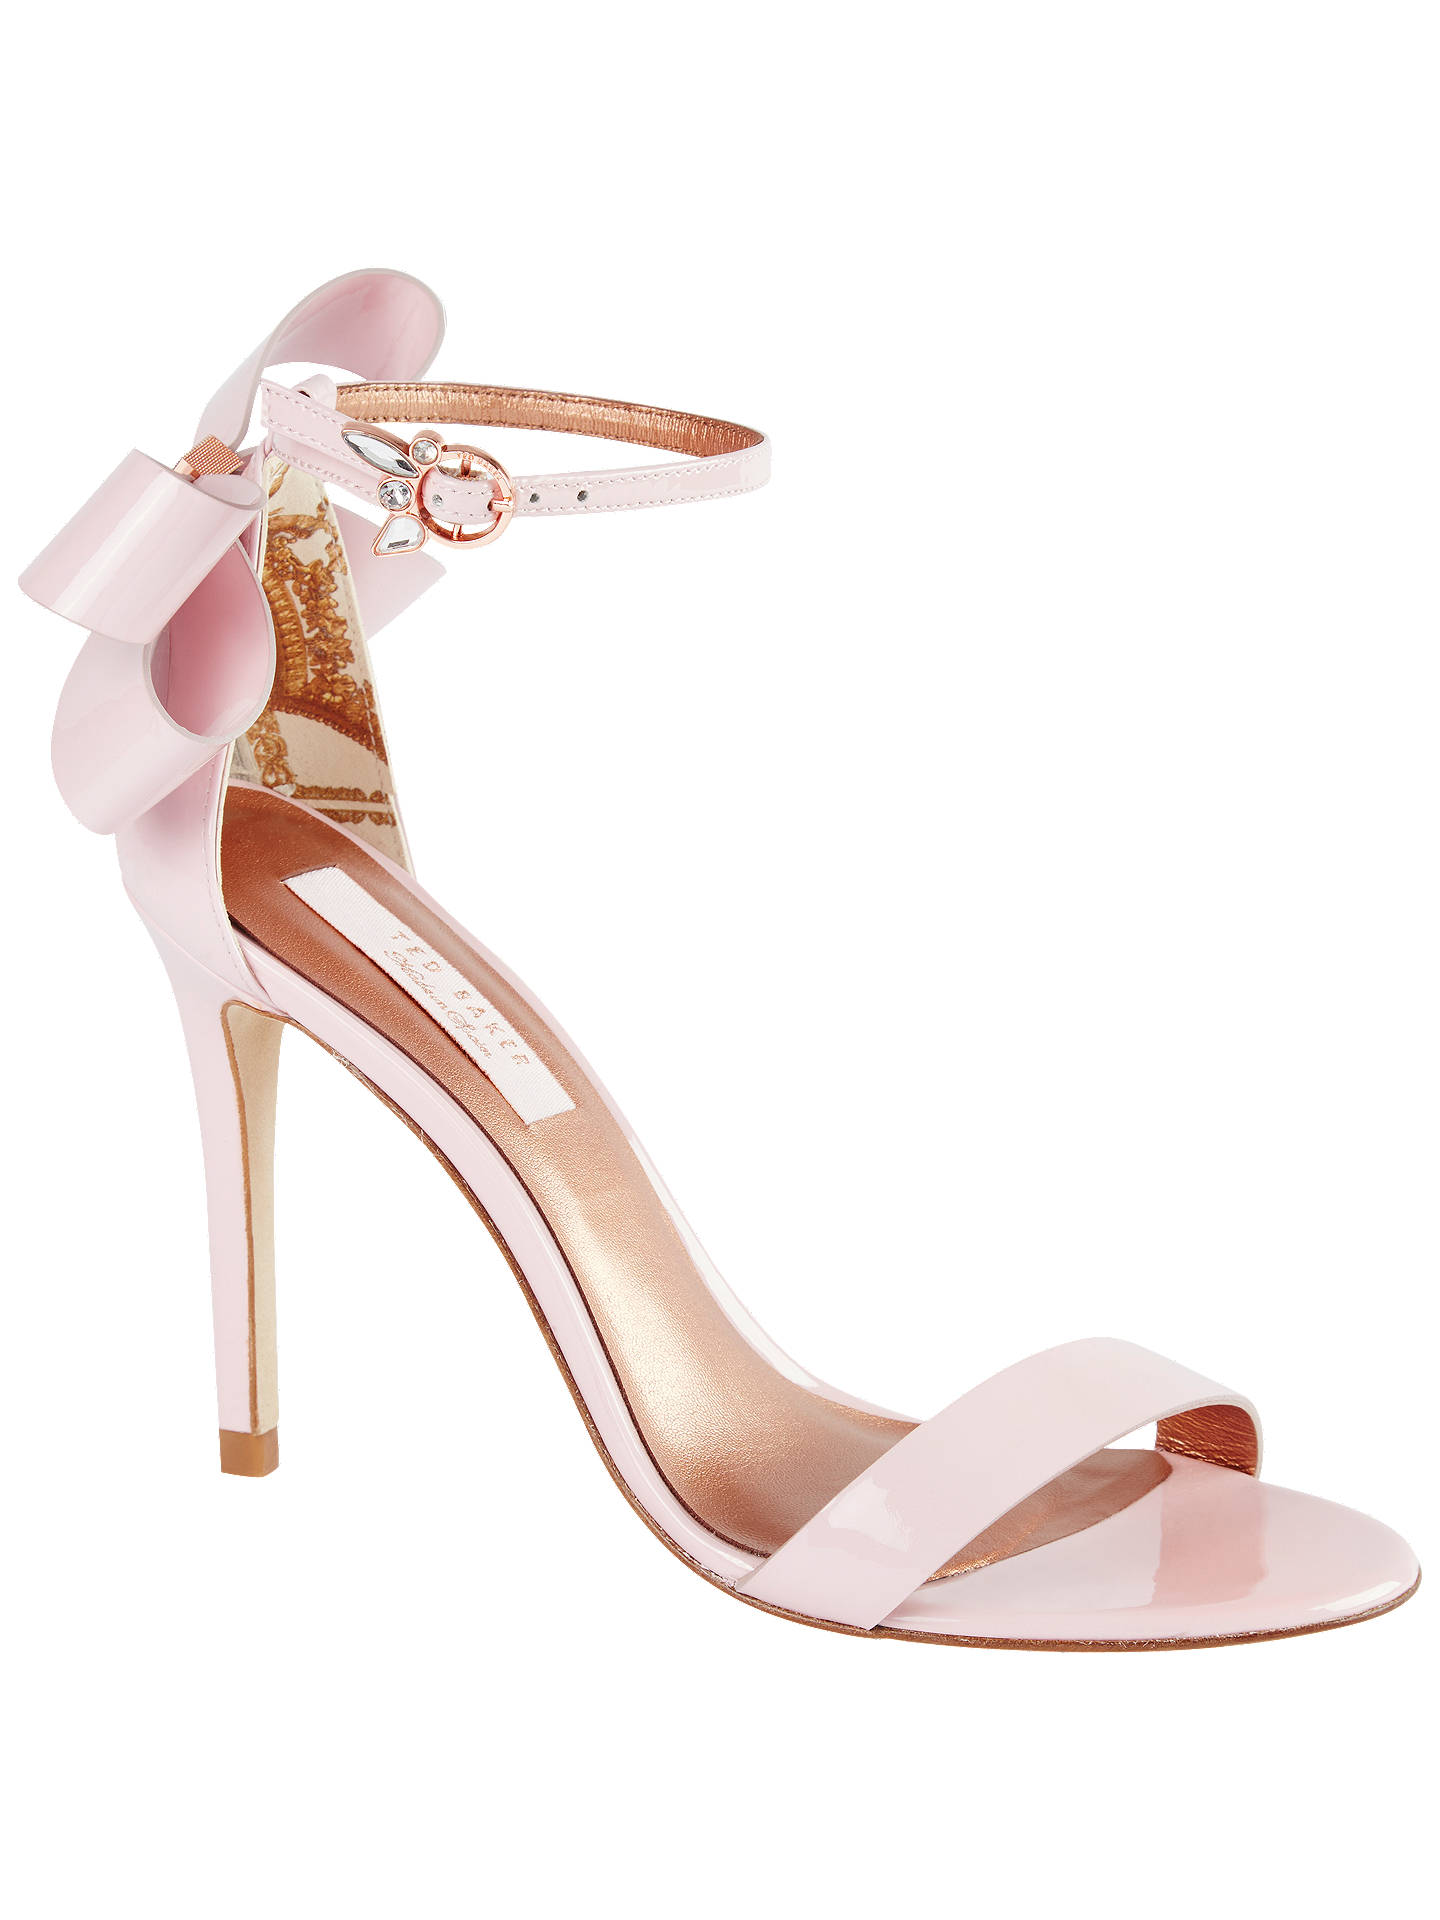 afa724f52 Ted Baker Sandalo Stiletto Heel Sandals at John Lewis   Partners